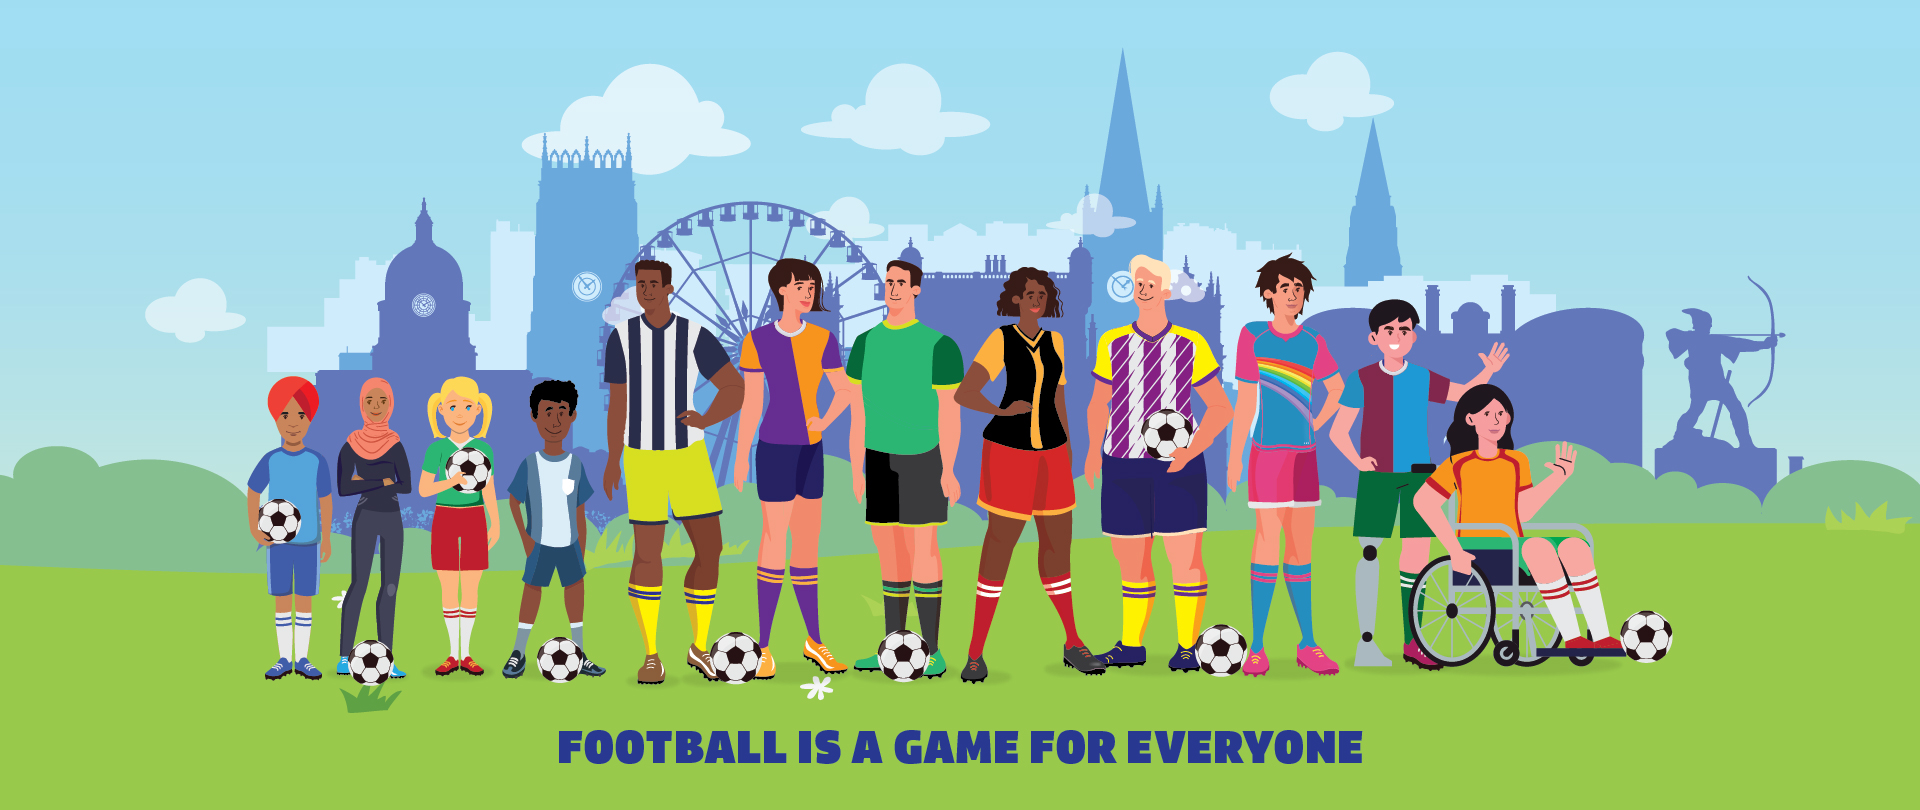 football is a game for everyone banner